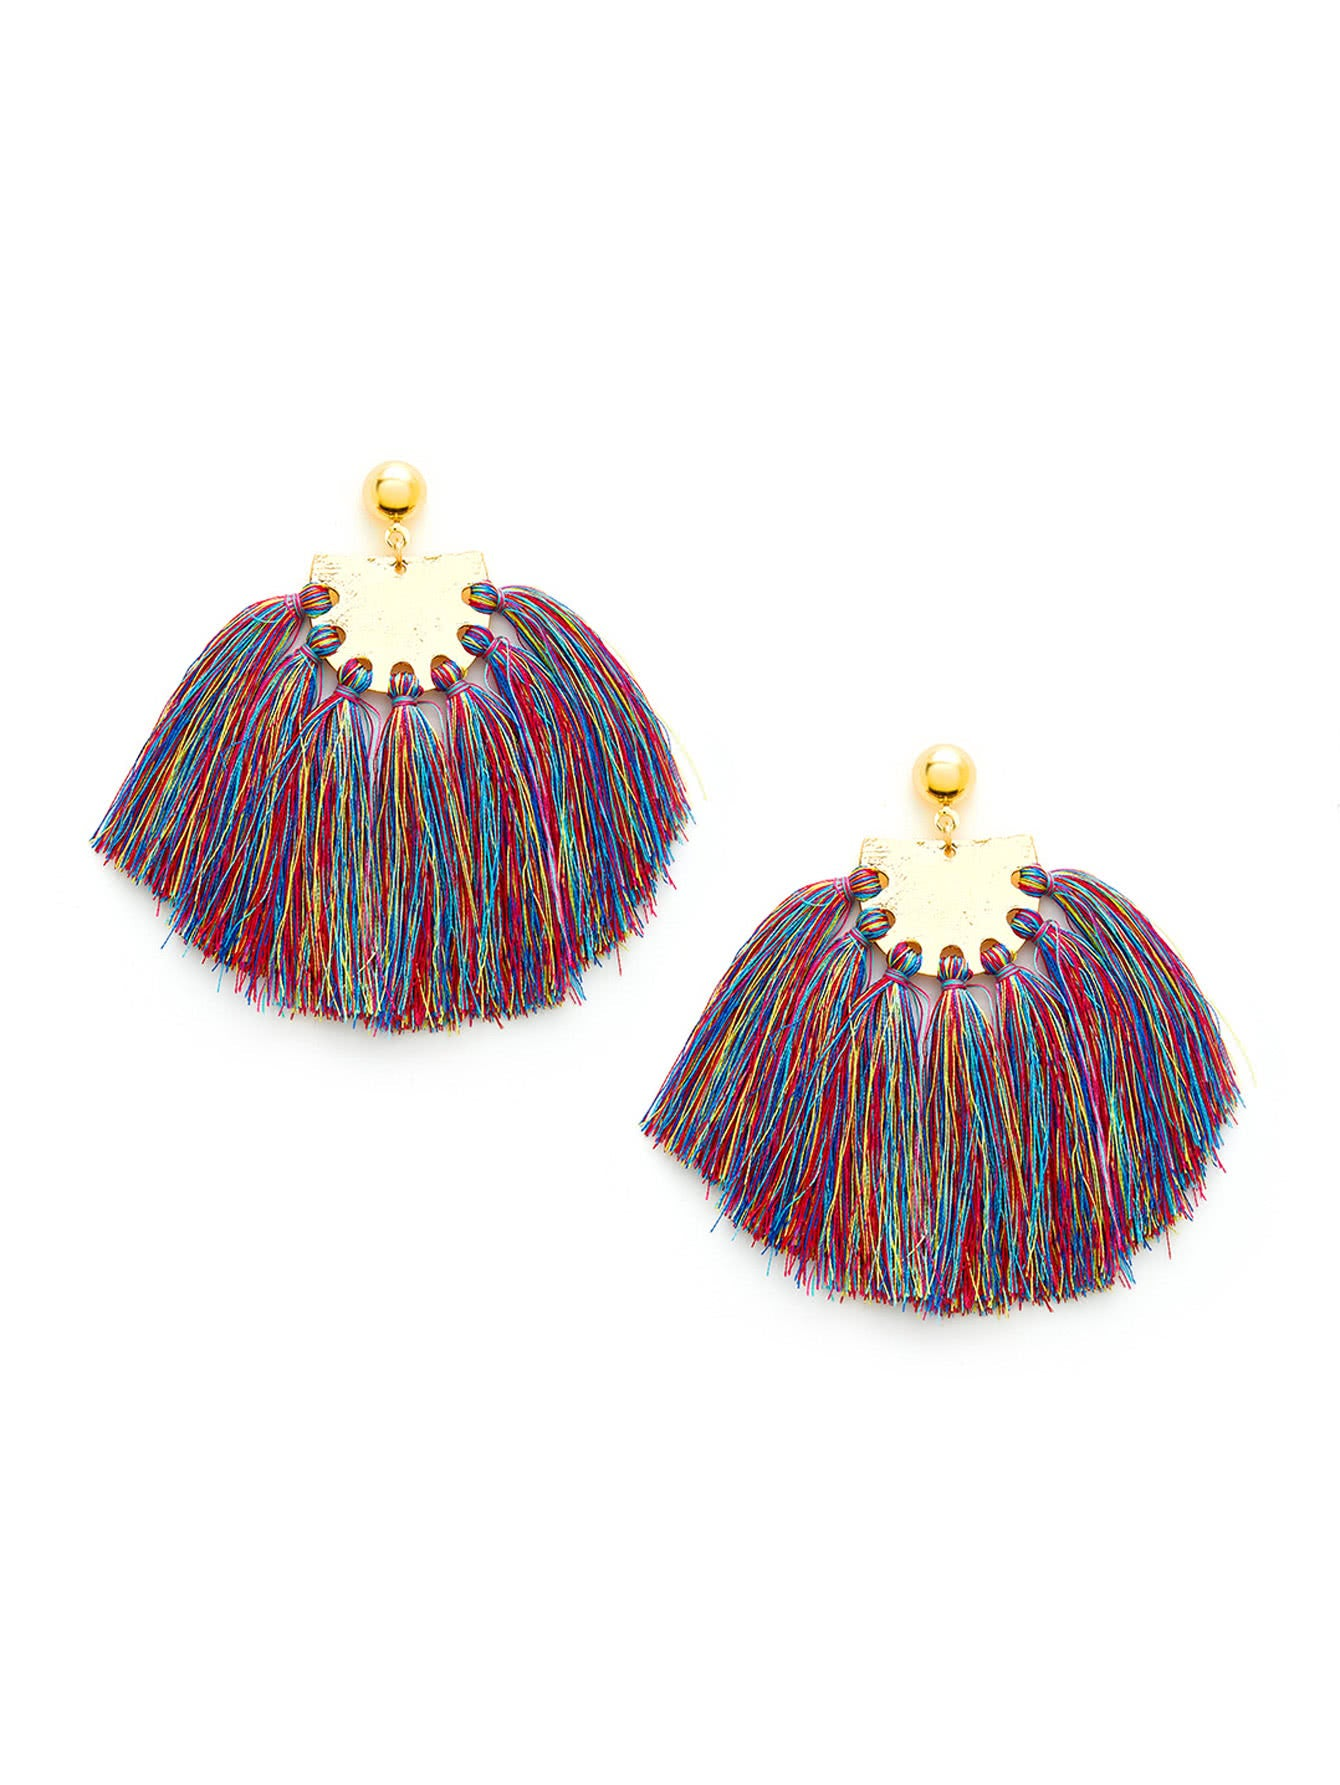 Pampas Thread Tassel Earrings - Multi-color